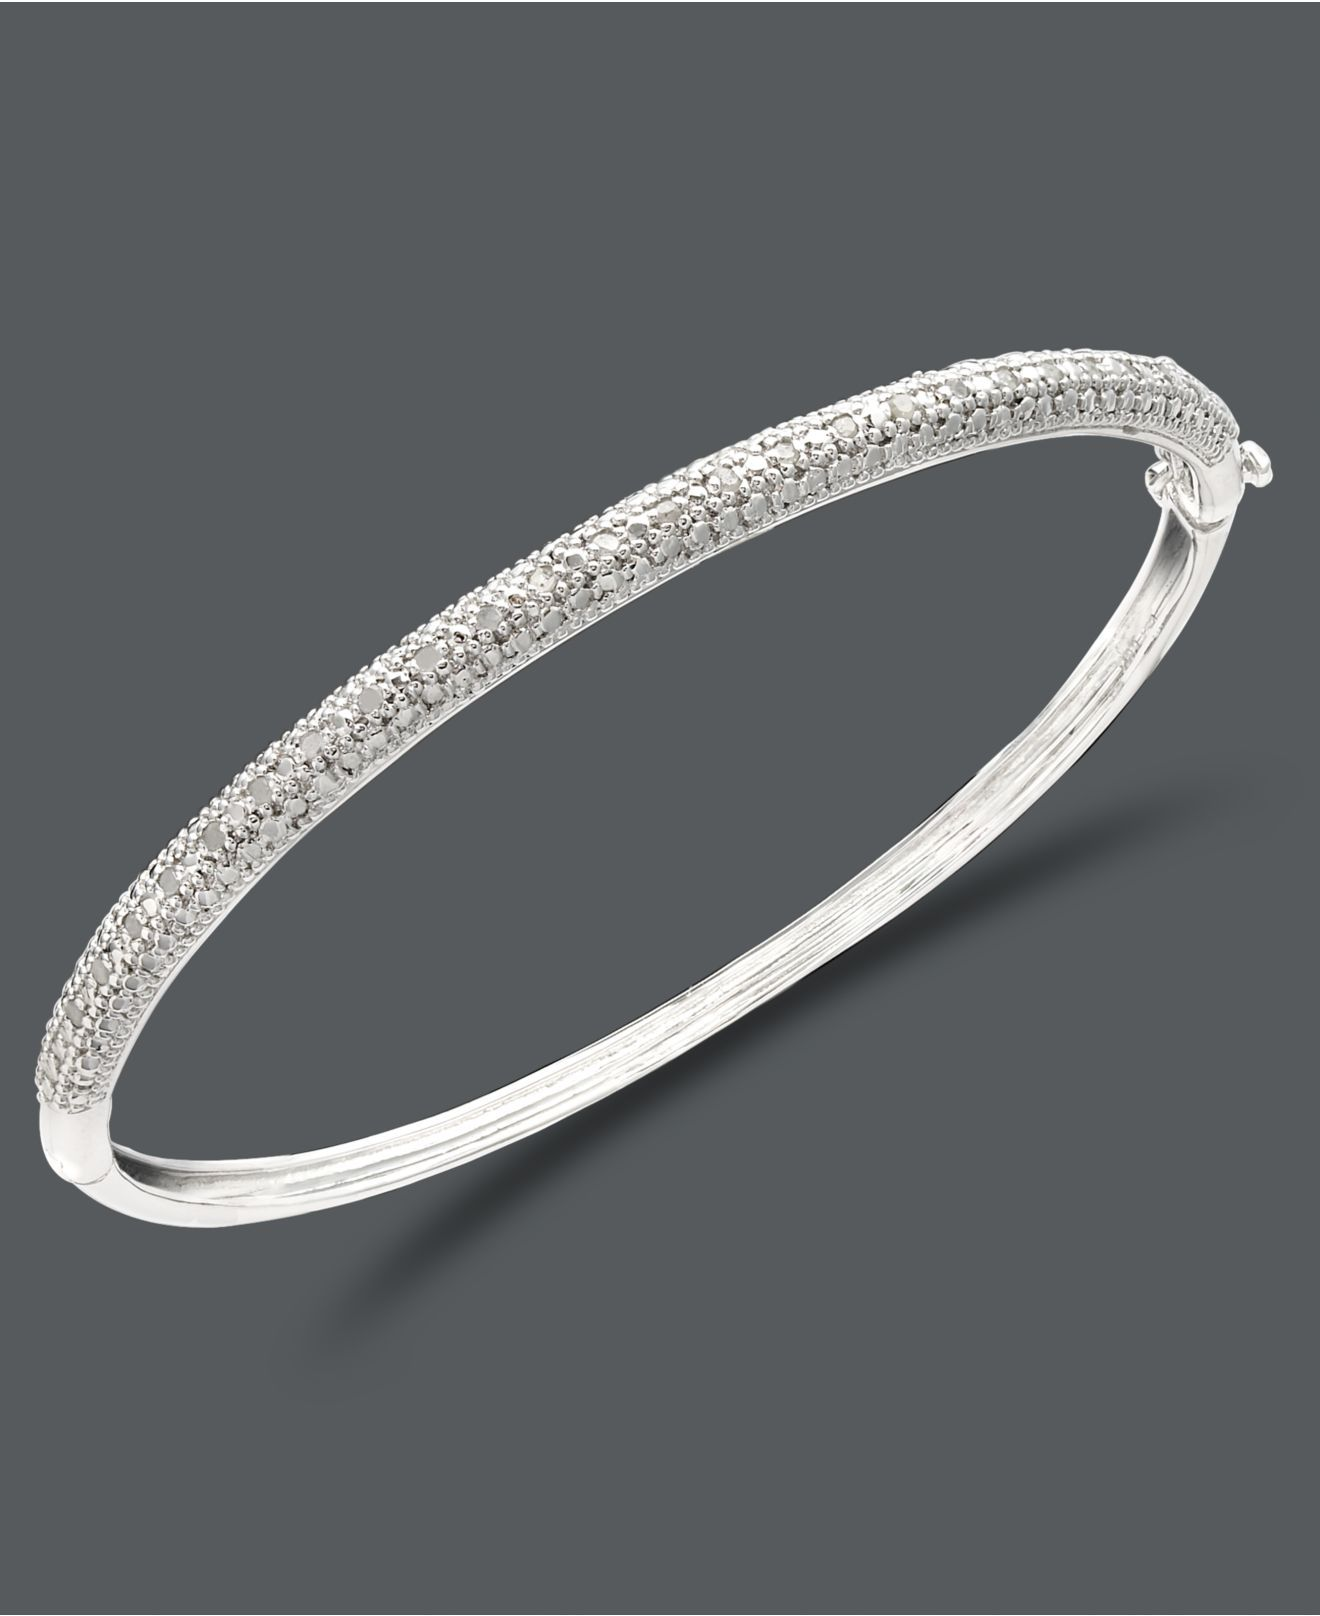 silver close large ban moda lynn by loading jewelry sterling diamond bangles bangle operandi